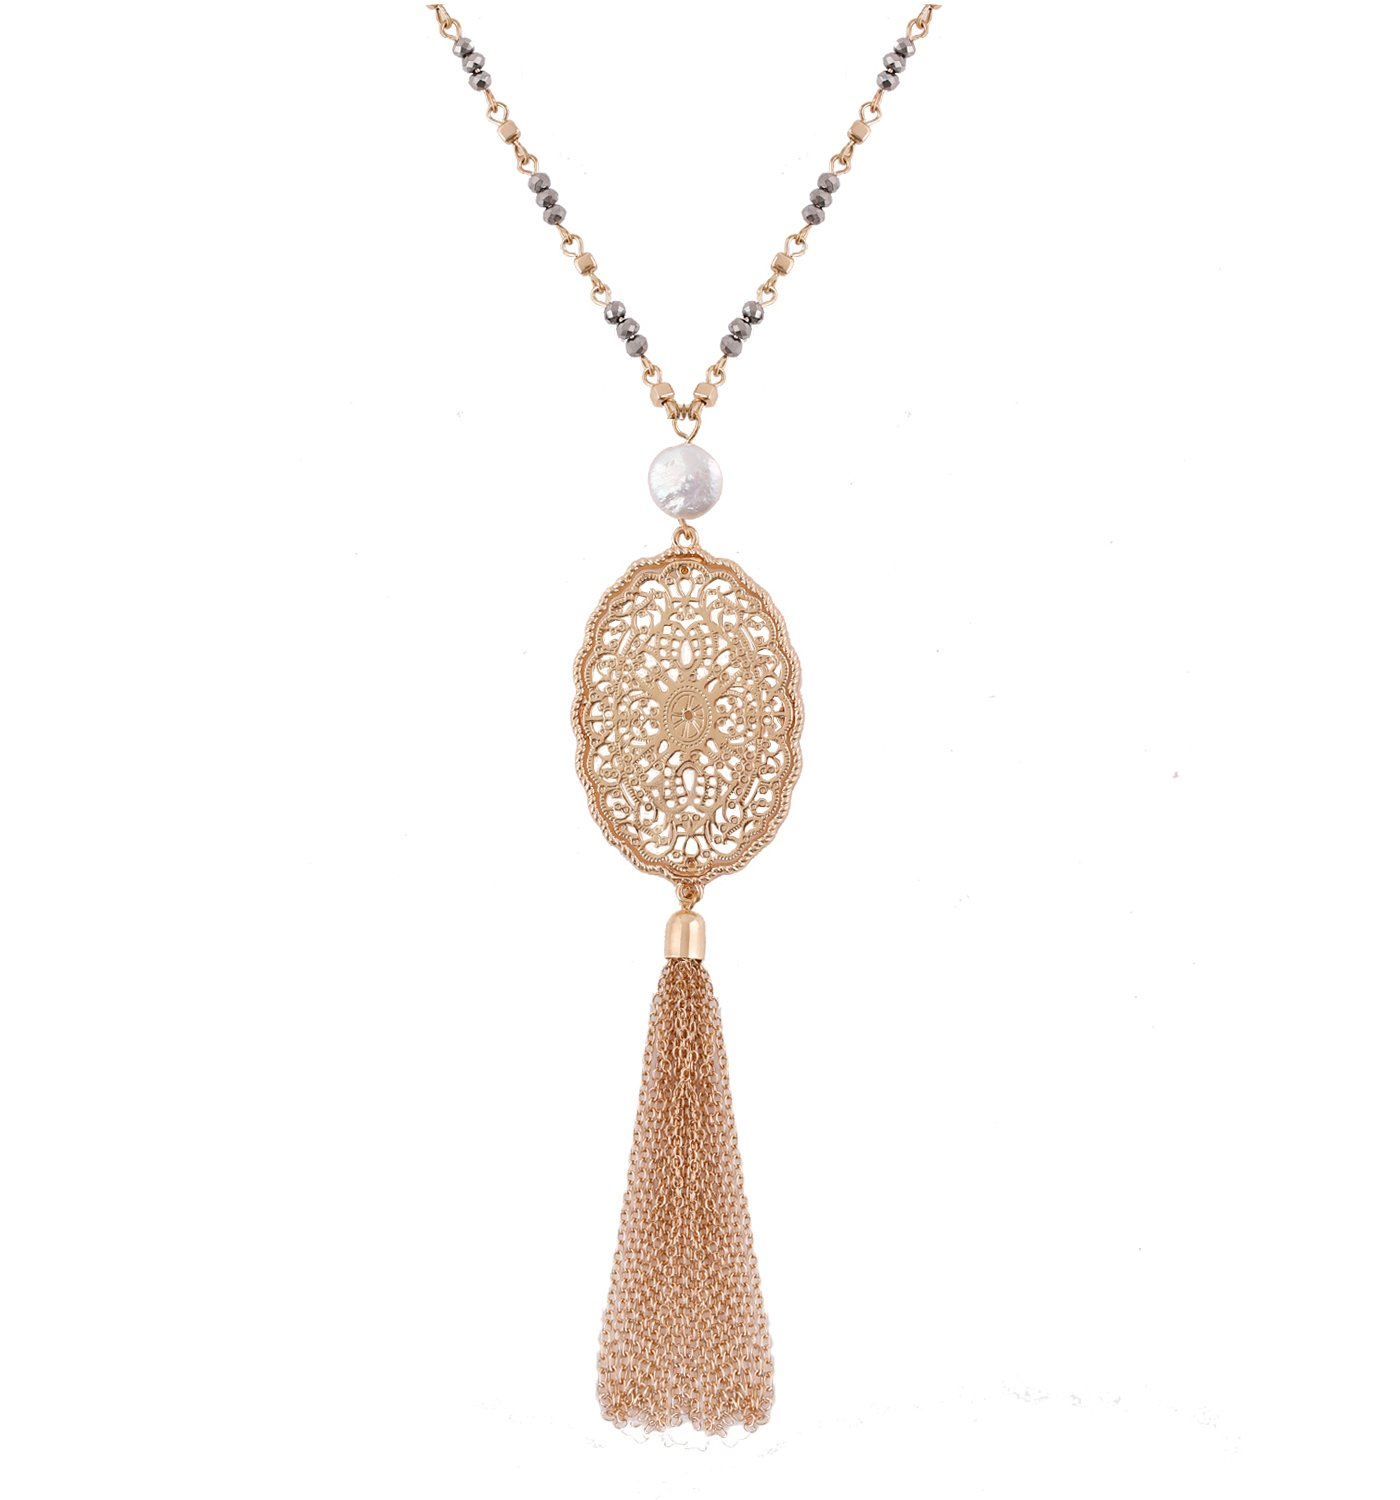 YEYA Bohemia Tassel Necklace Cute Filigree Oval Pendant Necklace Pearl Long Necklace For Women Girls Statement Jewelry (gold)